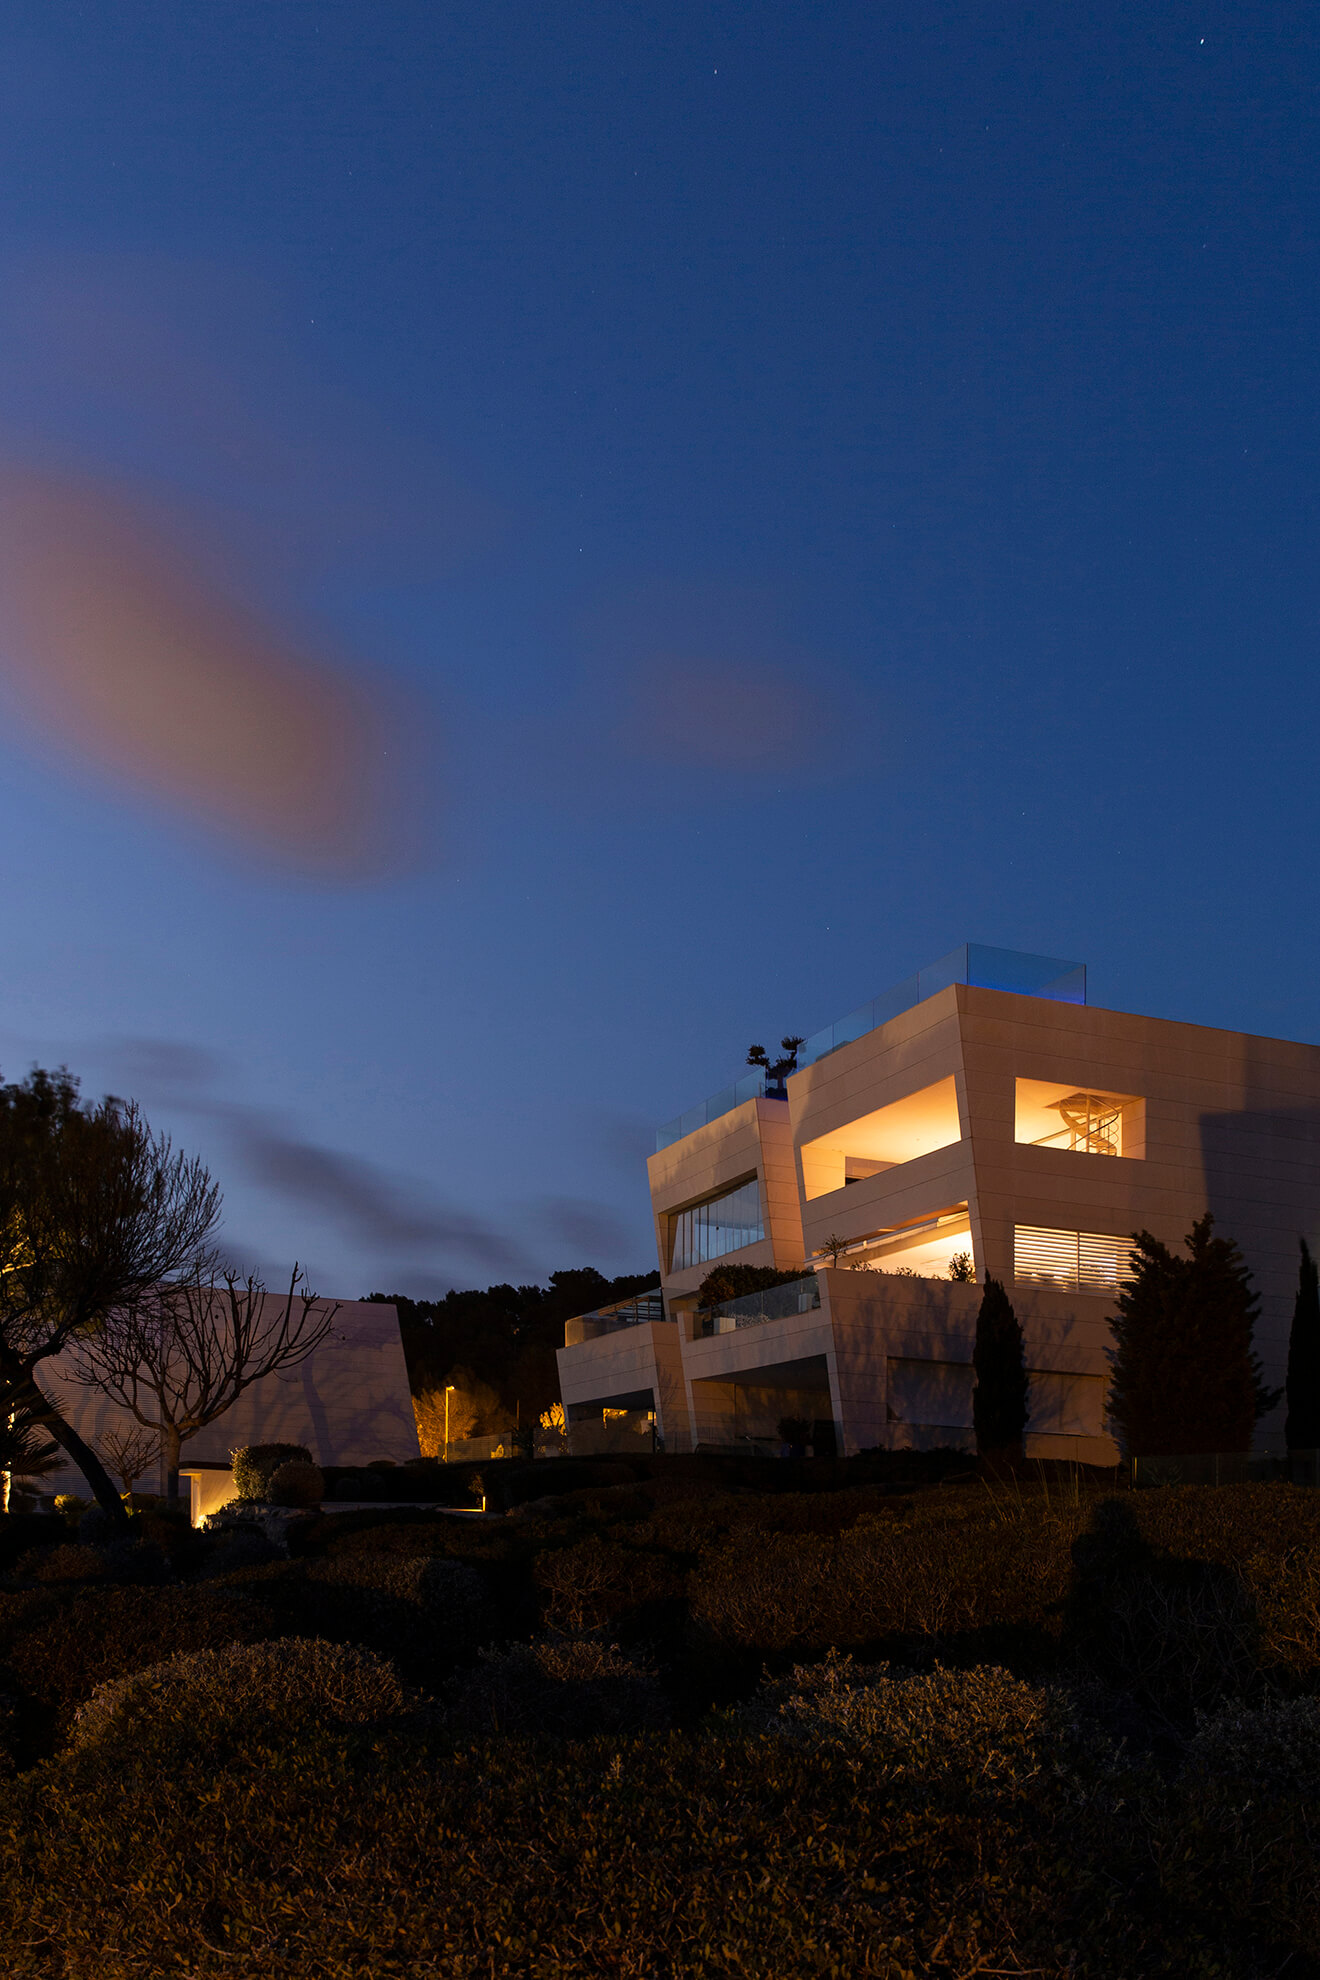 One of the houses of the Talamanca I residence at night